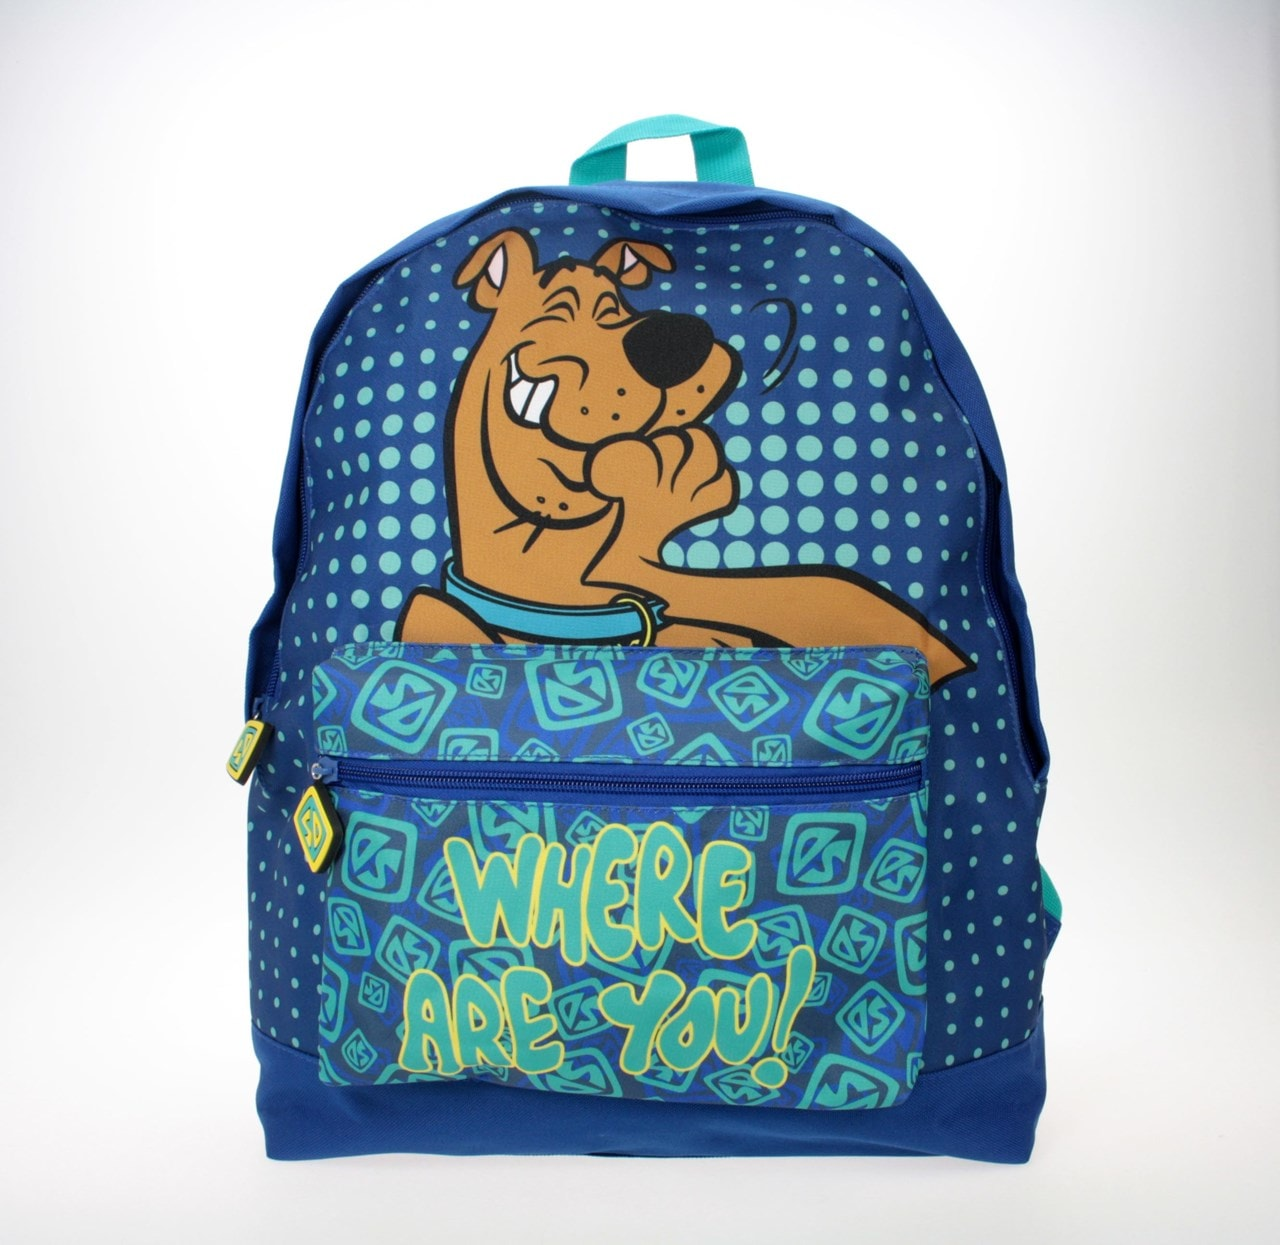 Scooby Doo: Where Are You! Backpack - 1